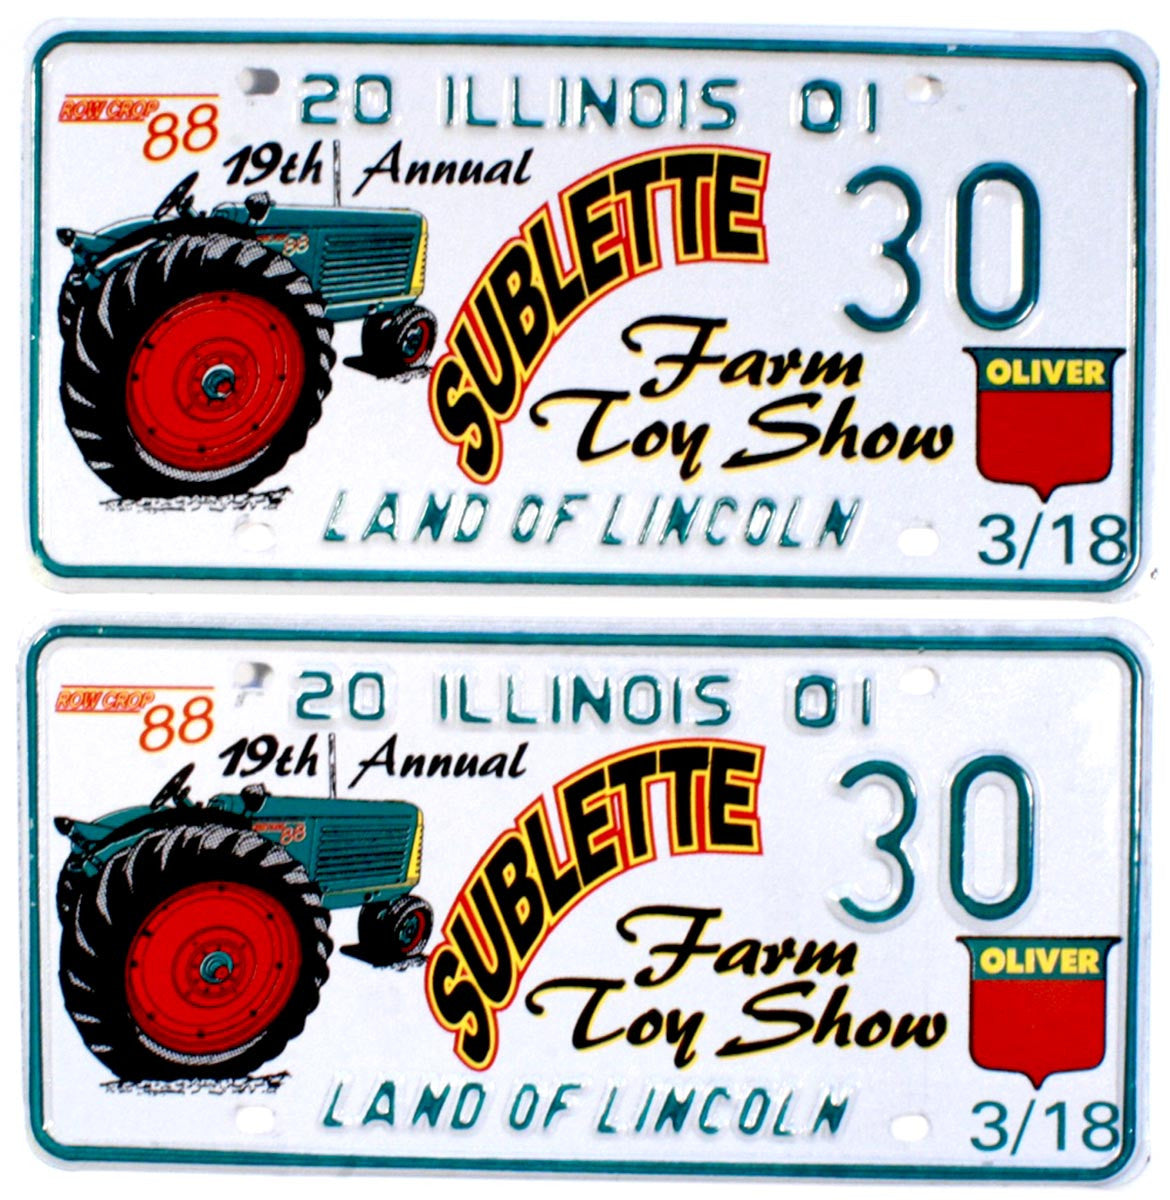 2001 Illinois Farm Toy Show License Plates